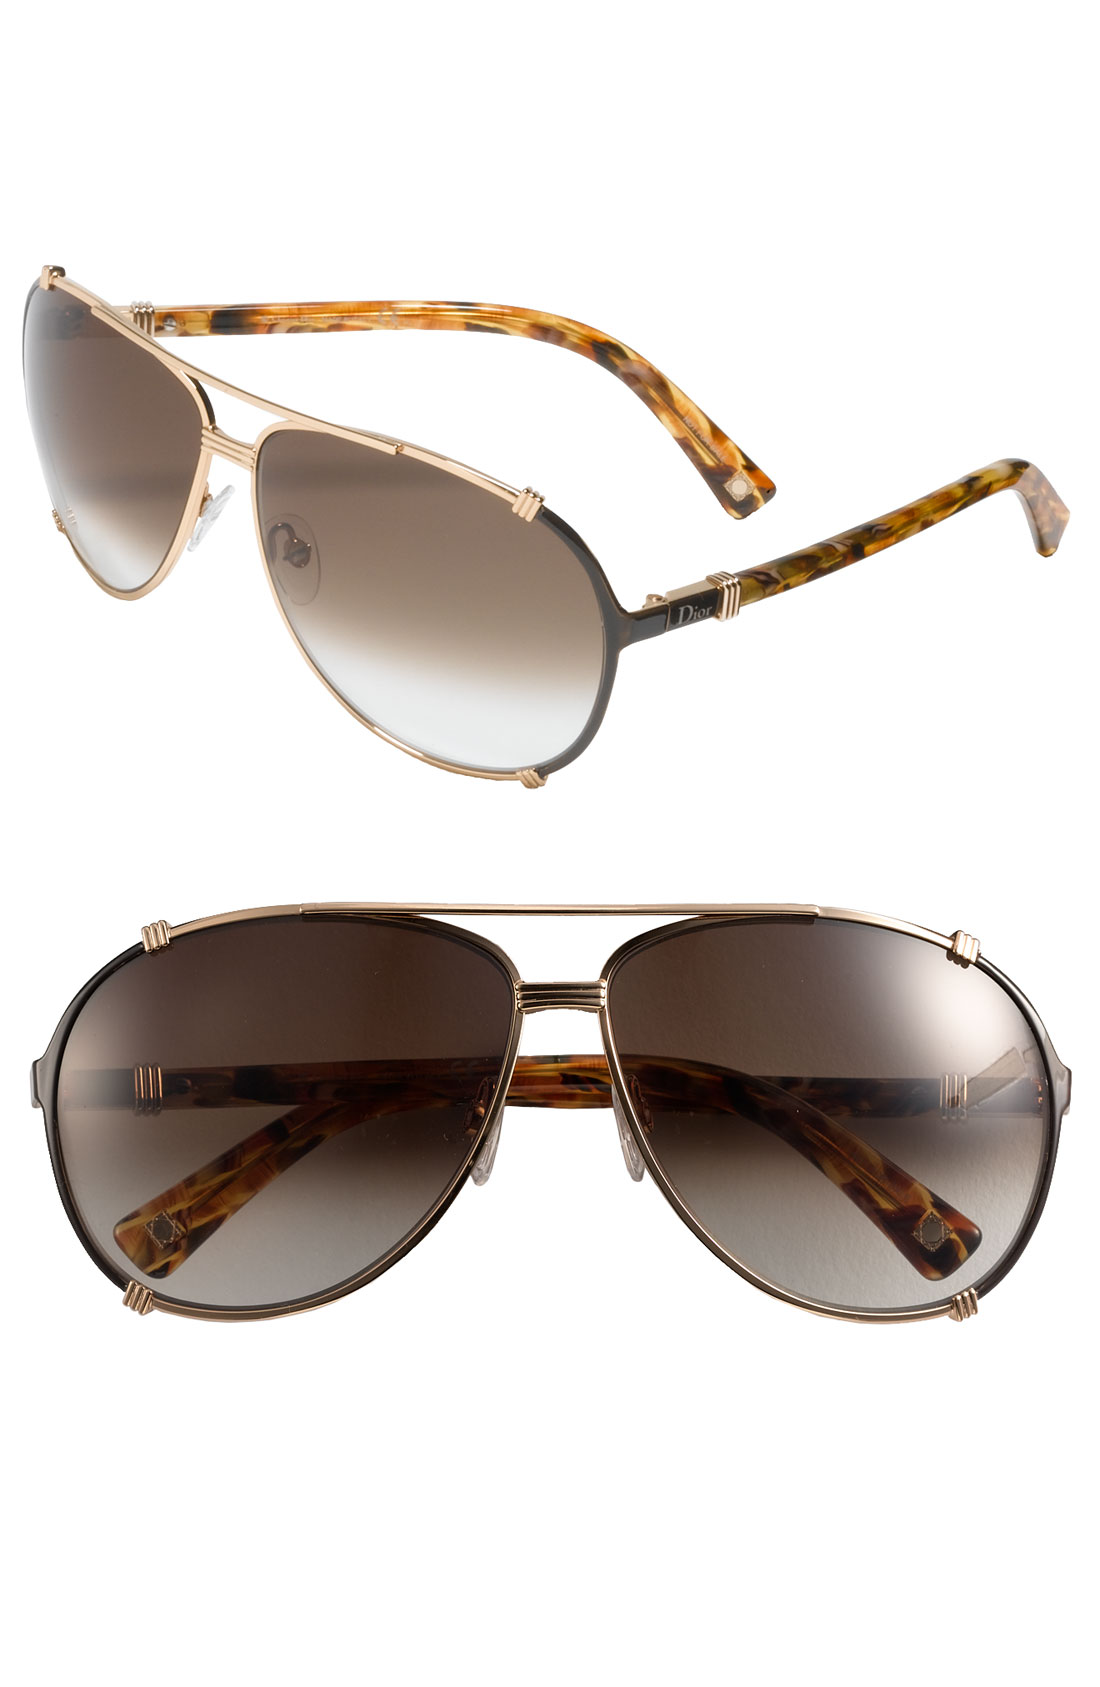 Dior Gold Frame Sunglasses : Dior Chicago 63Mm Metal Aviator Sunglasses in Brown ...